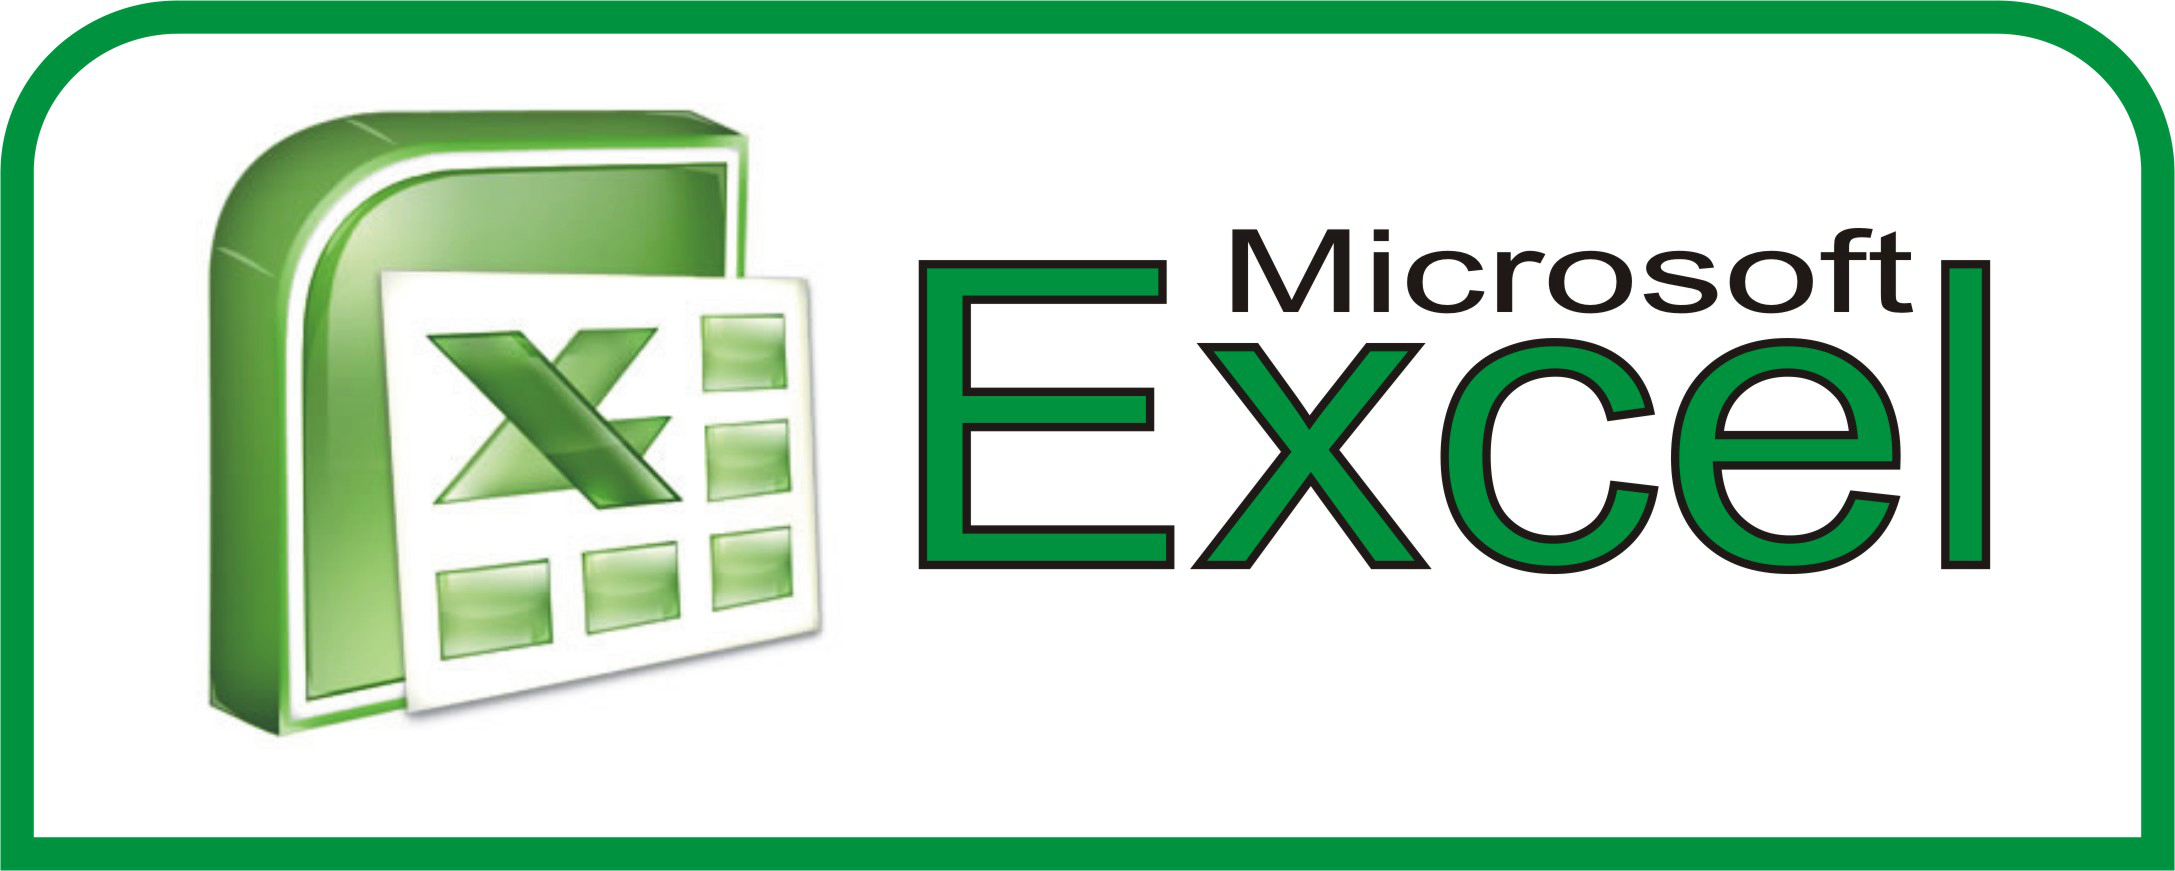 Ediblewildsus  Unusual  Excel Shortcuts You Probably Didnt Know About  Techdissected With Marvelous Excel Logic Test Besides Vlookup Excel Mac Furthermore Sample Project Plan Template Excel With Breathtaking Microsoft Excel Gantt Chart Also Complex Numbers In Excel In Addition Excel Border Shortcut And Excel Spreadsheet For Mac As Well As Form Controls Excel Additionally Month Name In Excel From Techdissectedcom With Ediblewildsus  Marvelous  Excel Shortcuts You Probably Didnt Know About  Techdissected With Breathtaking Excel Logic Test Besides Vlookup Excel Mac Furthermore Sample Project Plan Template Excel And Unusual Microsoft Excel Gantt Chart Also Complex Numbers In Excel In Addition Excel Border Shortcut From Techdissectedcom